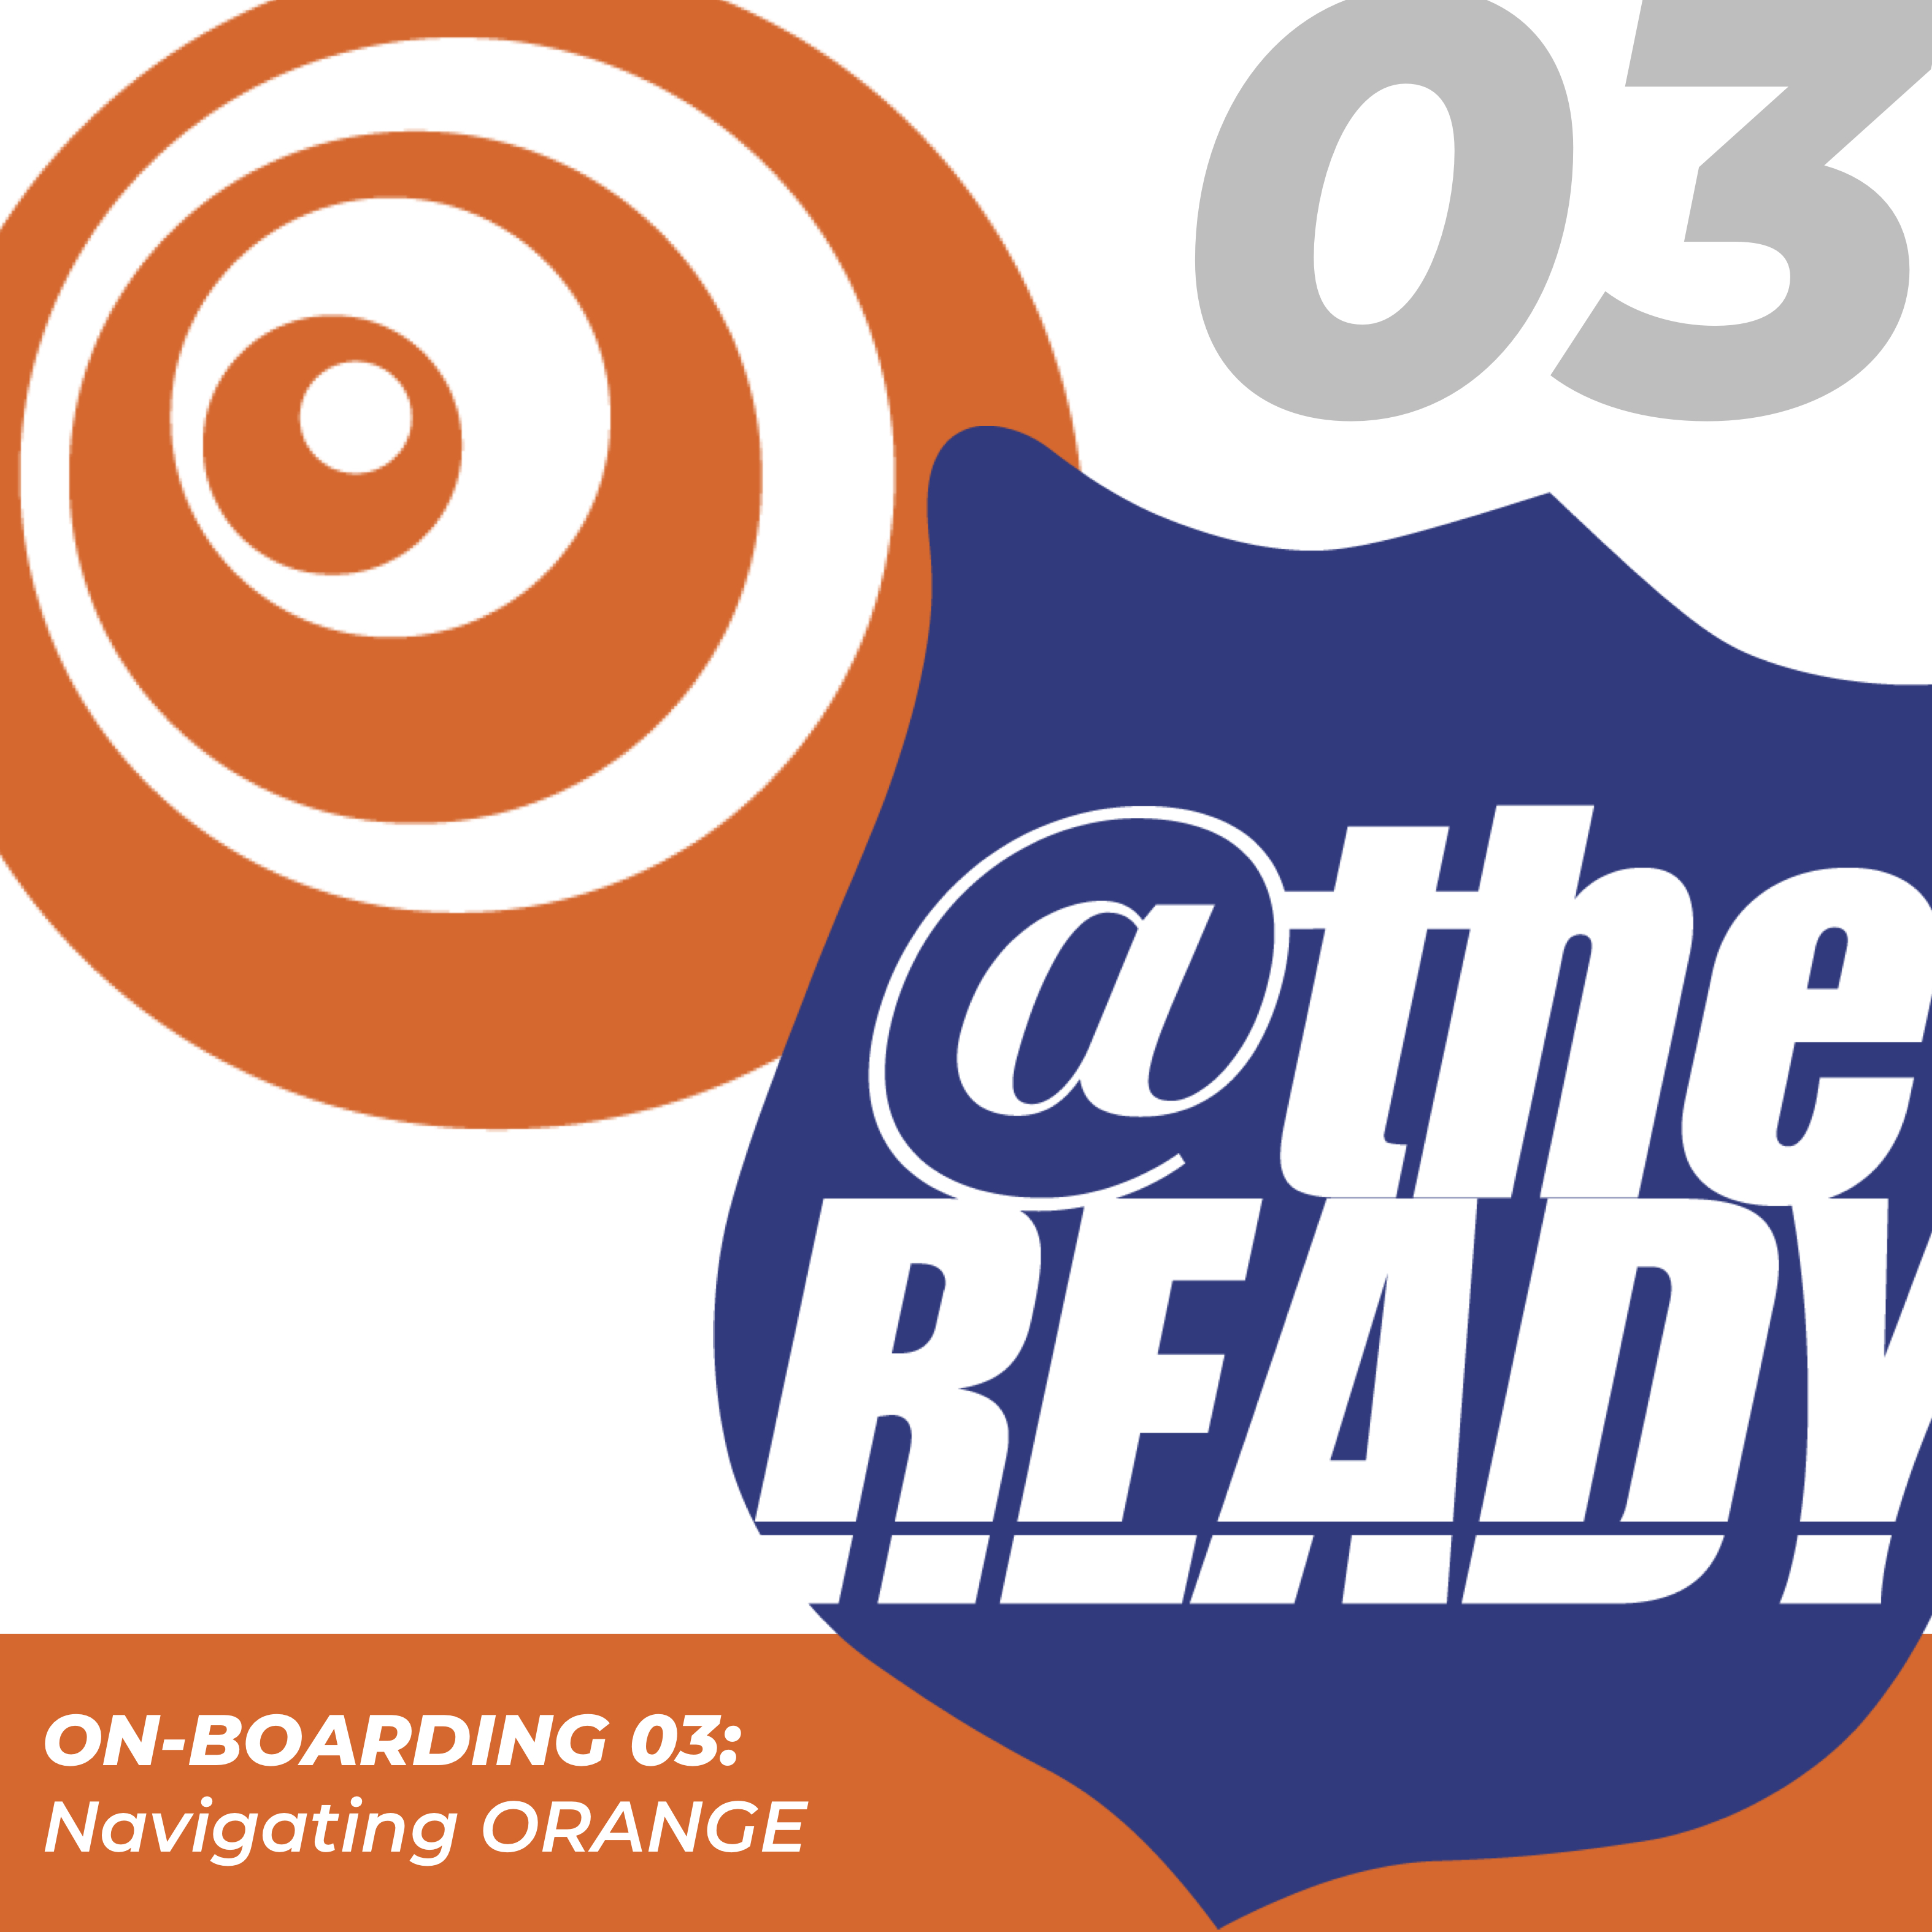 Click here for On-boarding 03: Navigating Orange